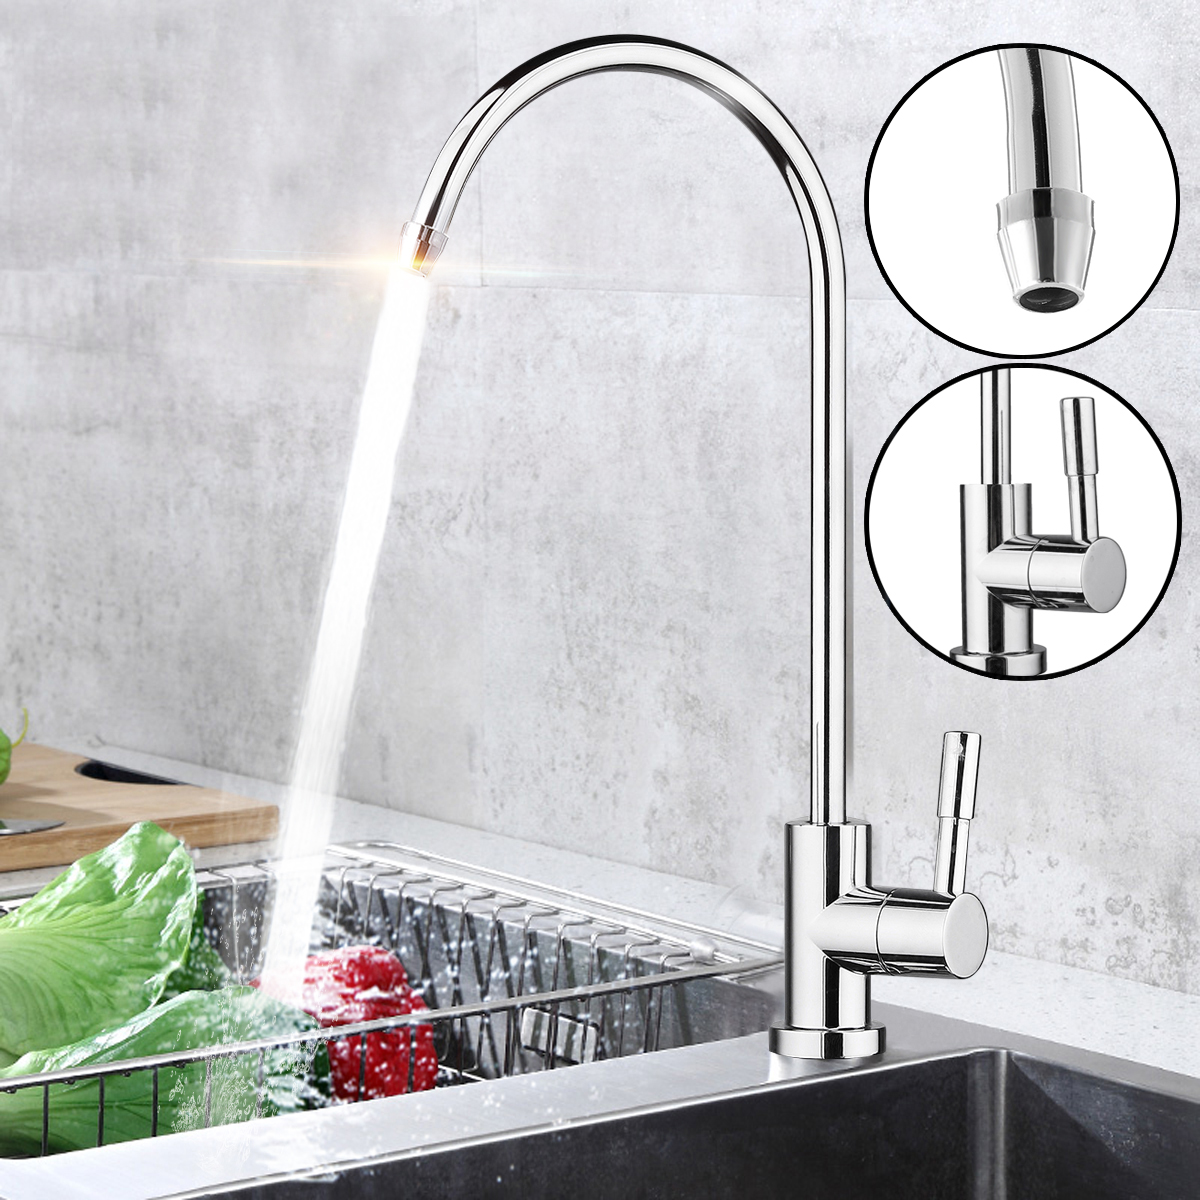 Water Filter Faucet Chrome Plated 1/4 Inch Connect Hose Reverse Osmosis Filters Parts Purifier Direct Drinking Tap Kitchen